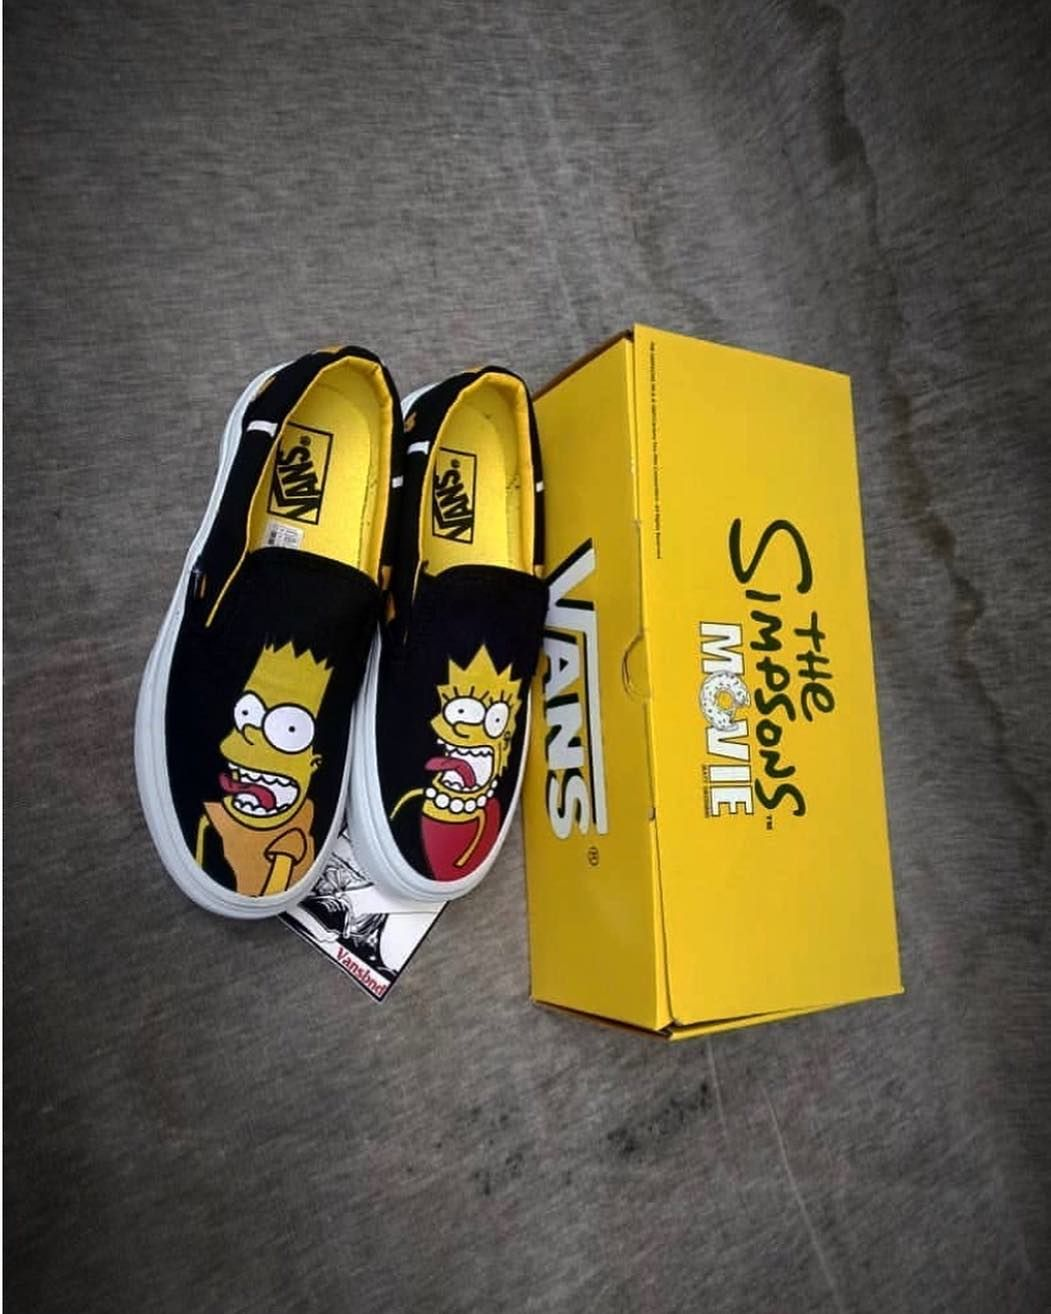 Edodcshoes Bandung On Instagram Edodcshoesslipon Readystock Vans Slipon X Simpsons Movie Condition 100 Bnib Kualitas Pr Sneakers Custom Sneakers Vans